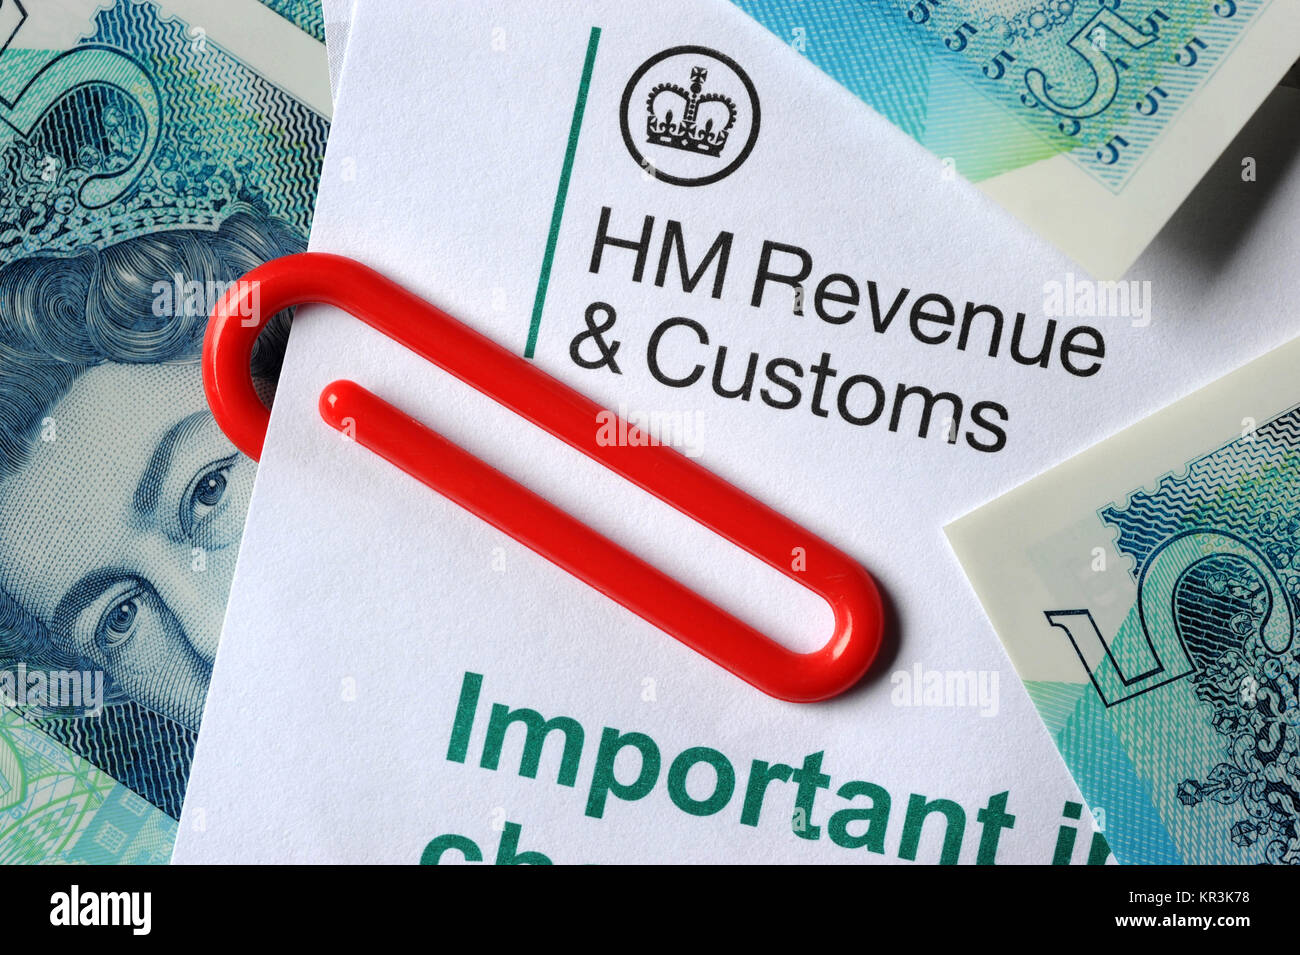 HMRC INLAND REVENUE LETTER WITH NEW FIVE POUND NOTES AND PAPER CLIP RE TAX H M REVENUE AND CUSTOMS TAXES INCOMES - Stock Image